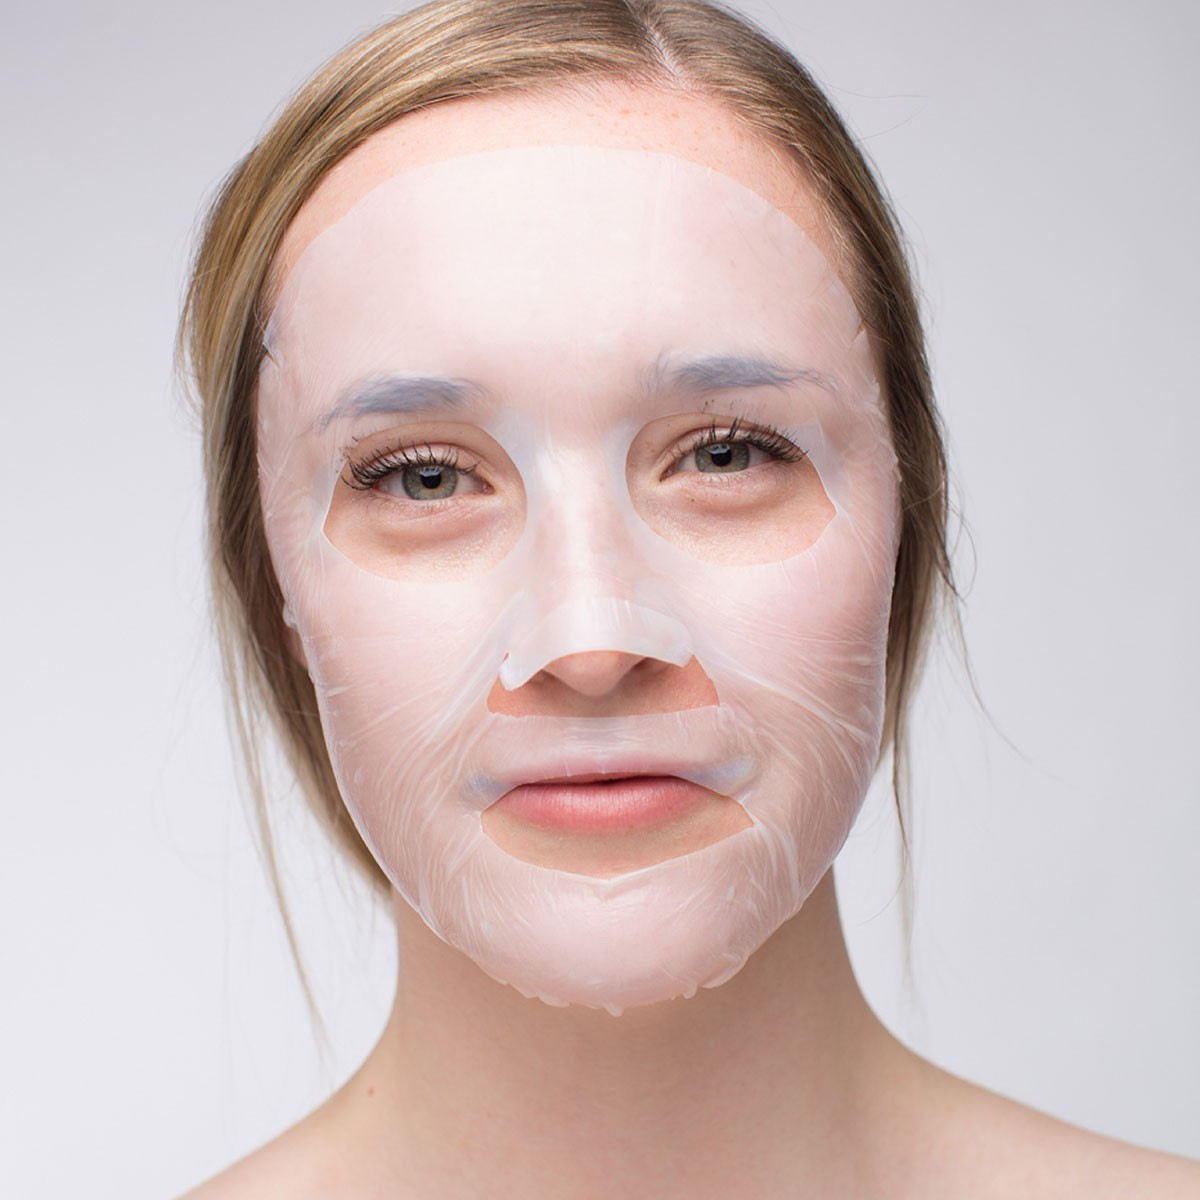 Mask applied to woman's face